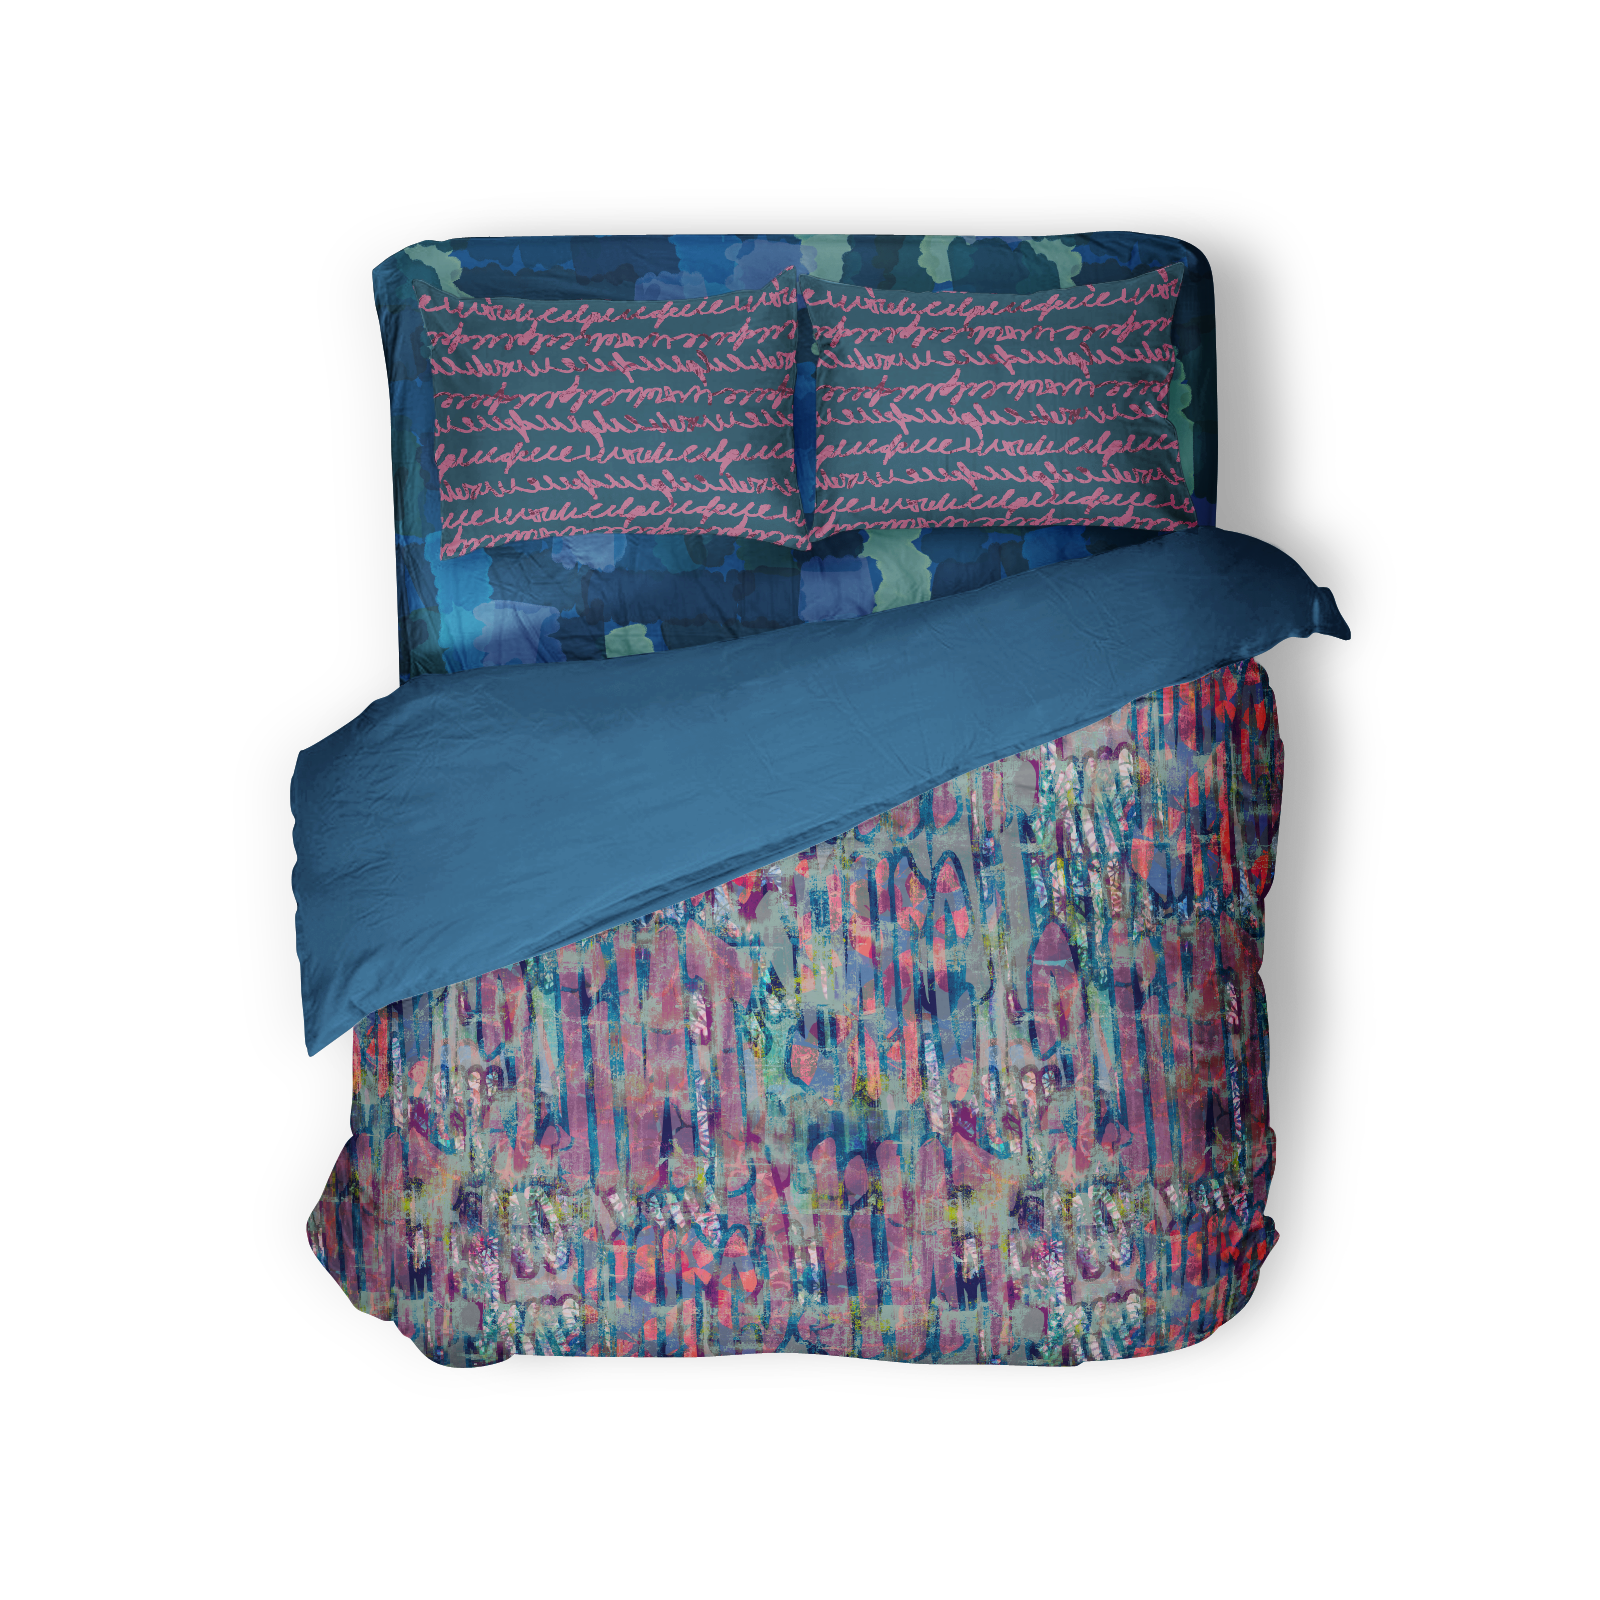 Bedding featuring Bronx Collection patterns